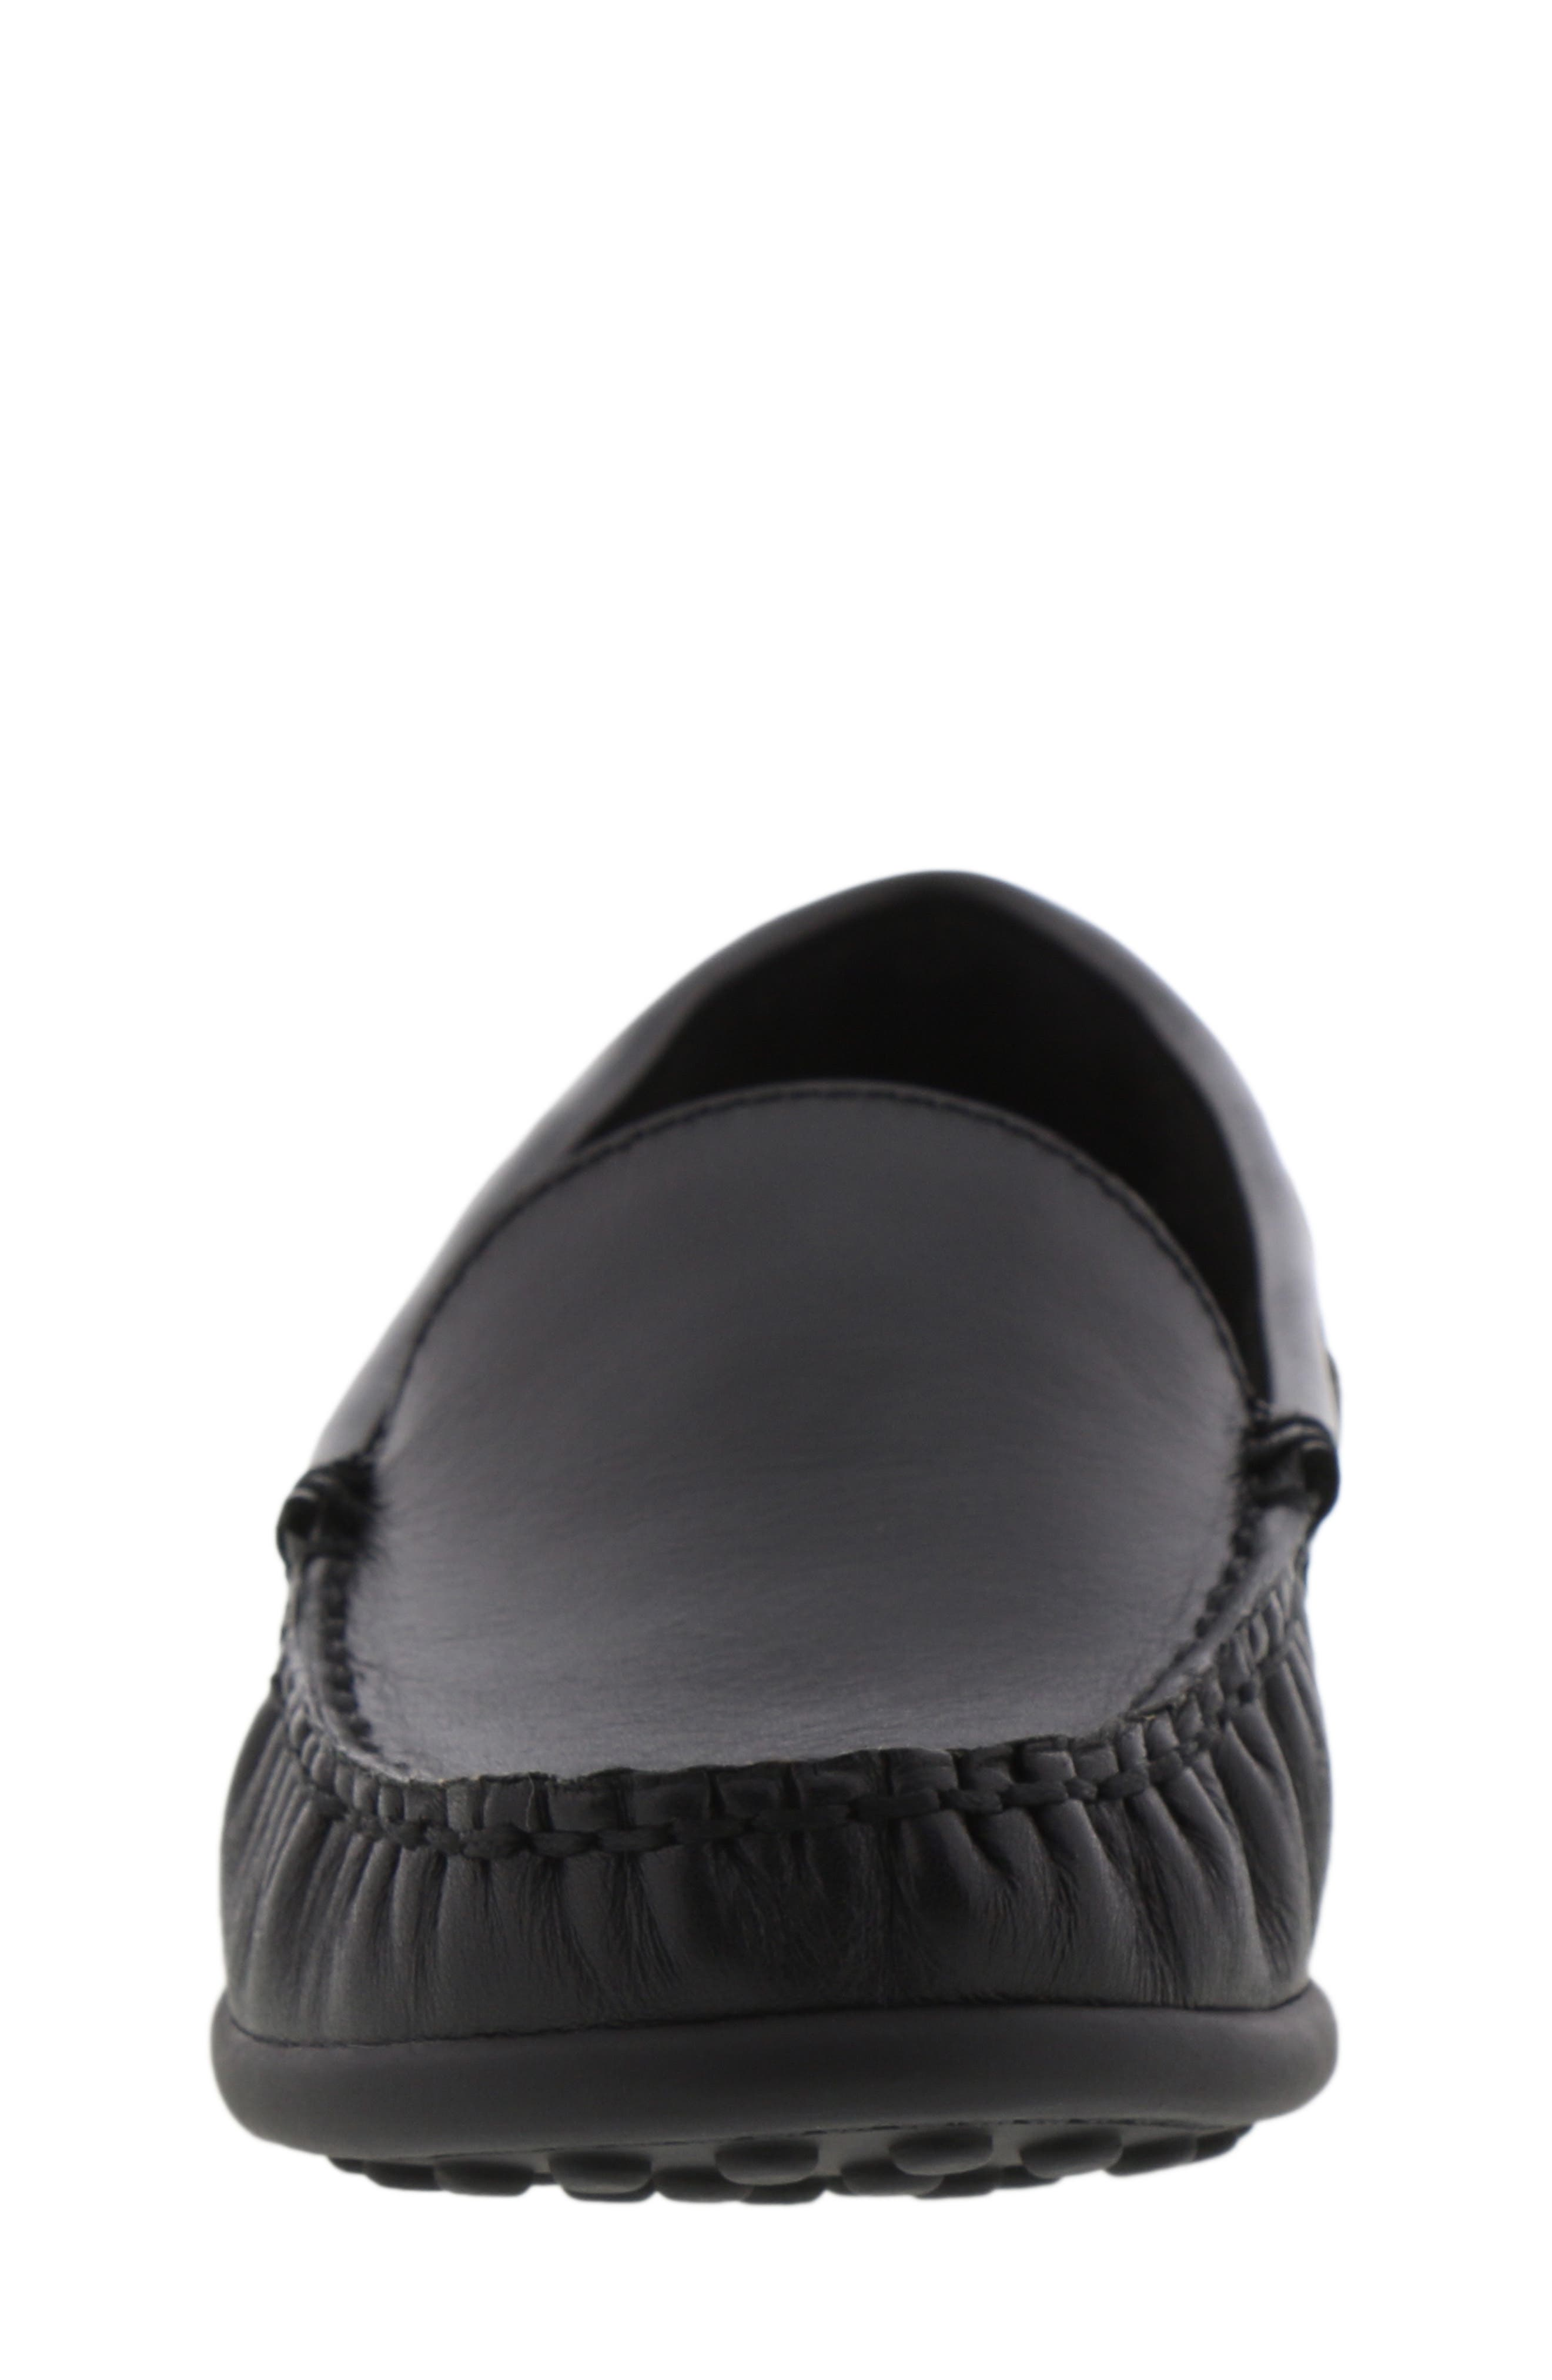 Helio Shift Driving Moccasin,                             Alternate thumbnail 4, color,                             BLACK SMOOTH